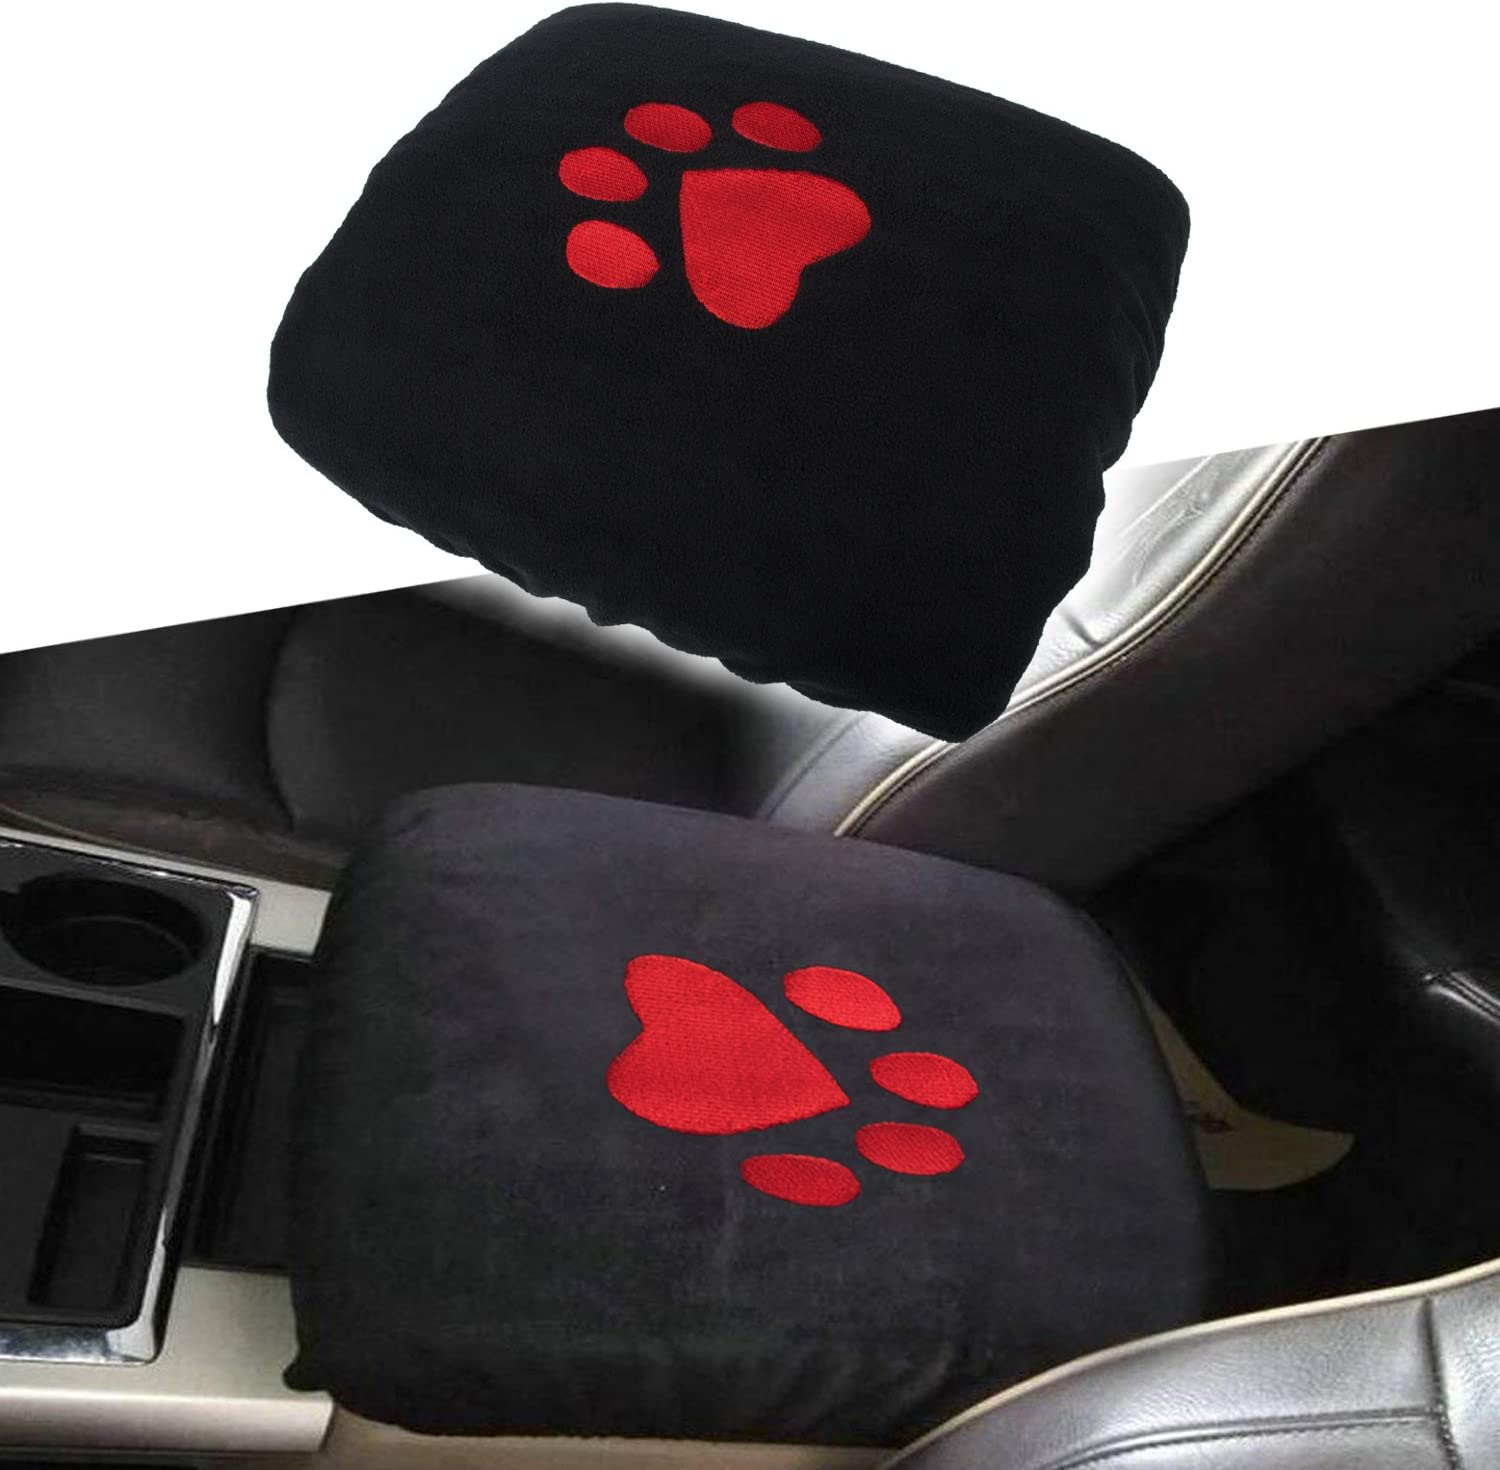 Center Console Armrest Pad Cover Max 63% OFF Dodge Fit for Protector Ranking TOP19 Cushion